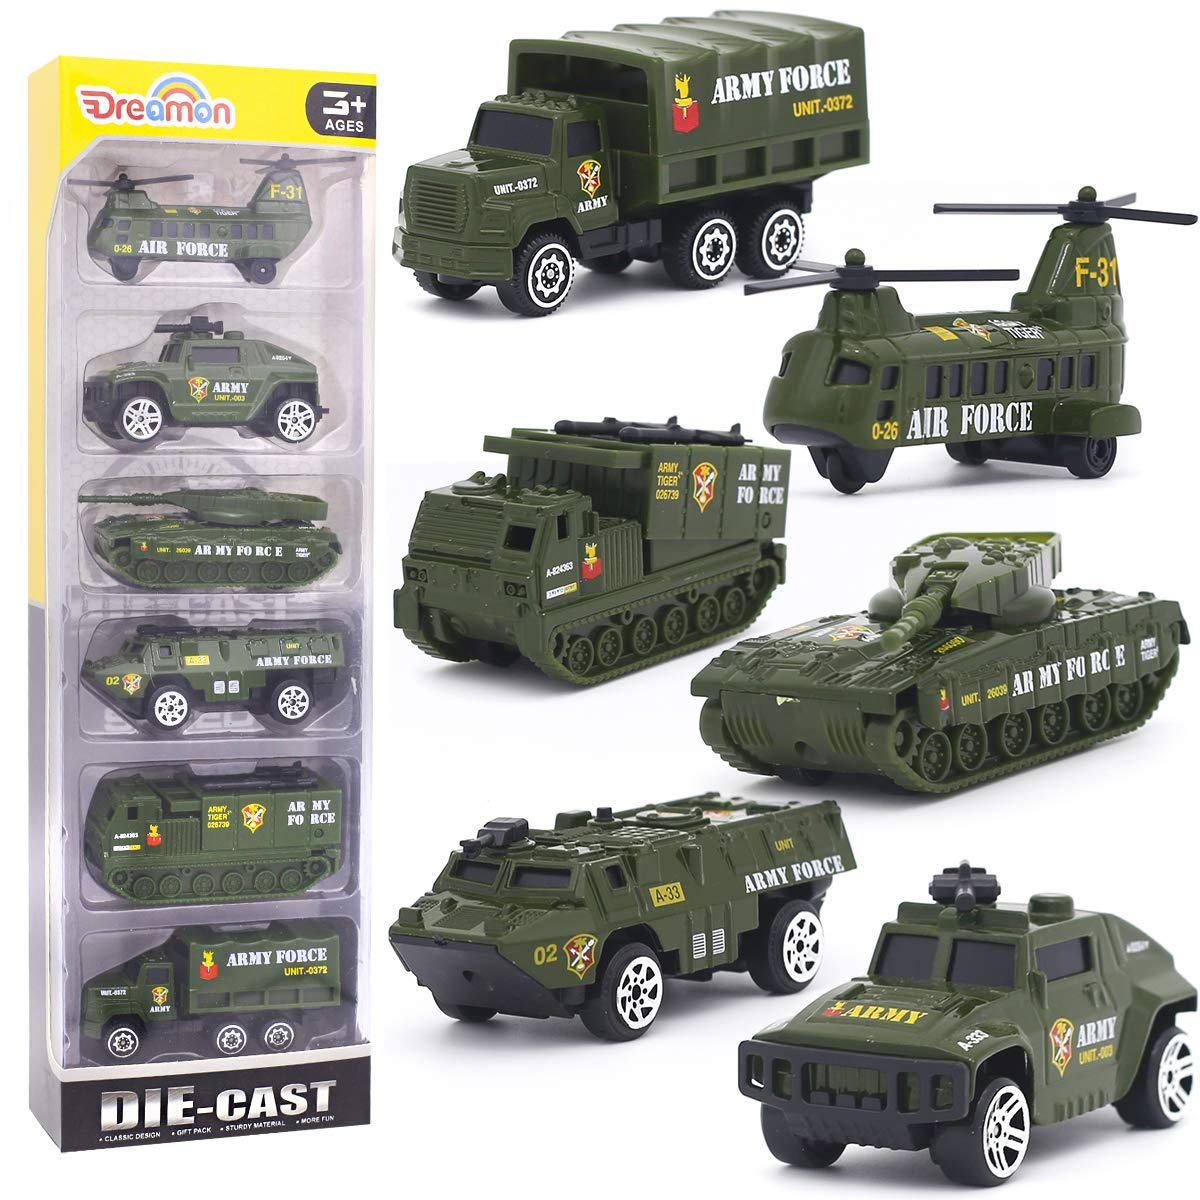 6Pcs Set Alloy Military Truck Set Mini Pocket Size Models Play Vehicles Toy for Kids Boys Party Favors Cake Decorations Topper Birthday Gift